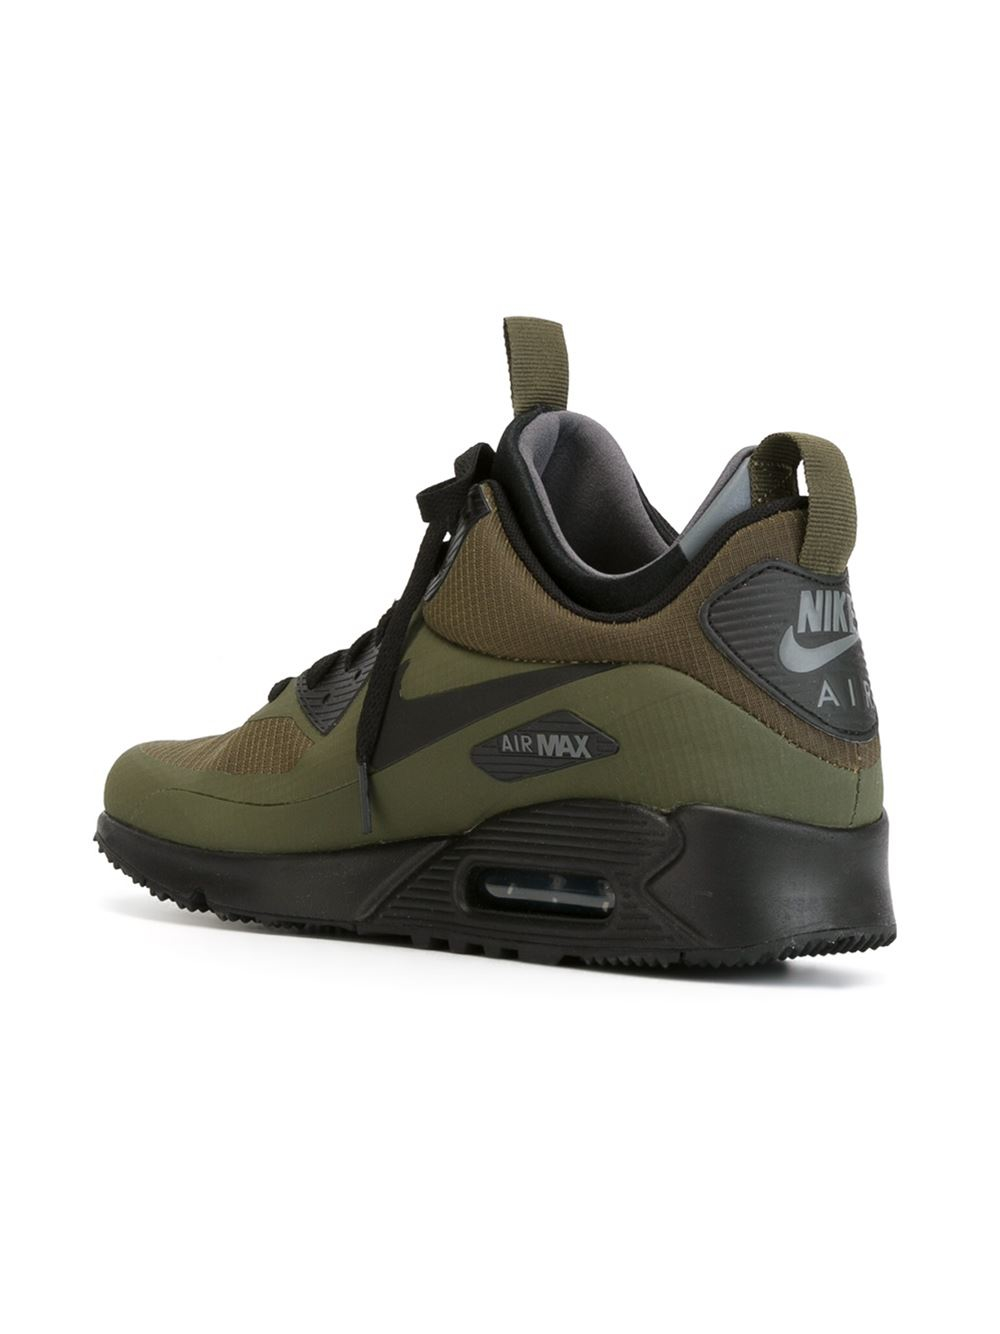 Lyst Nike Air Max 90 Mid Winter Sneaker Boots In Green